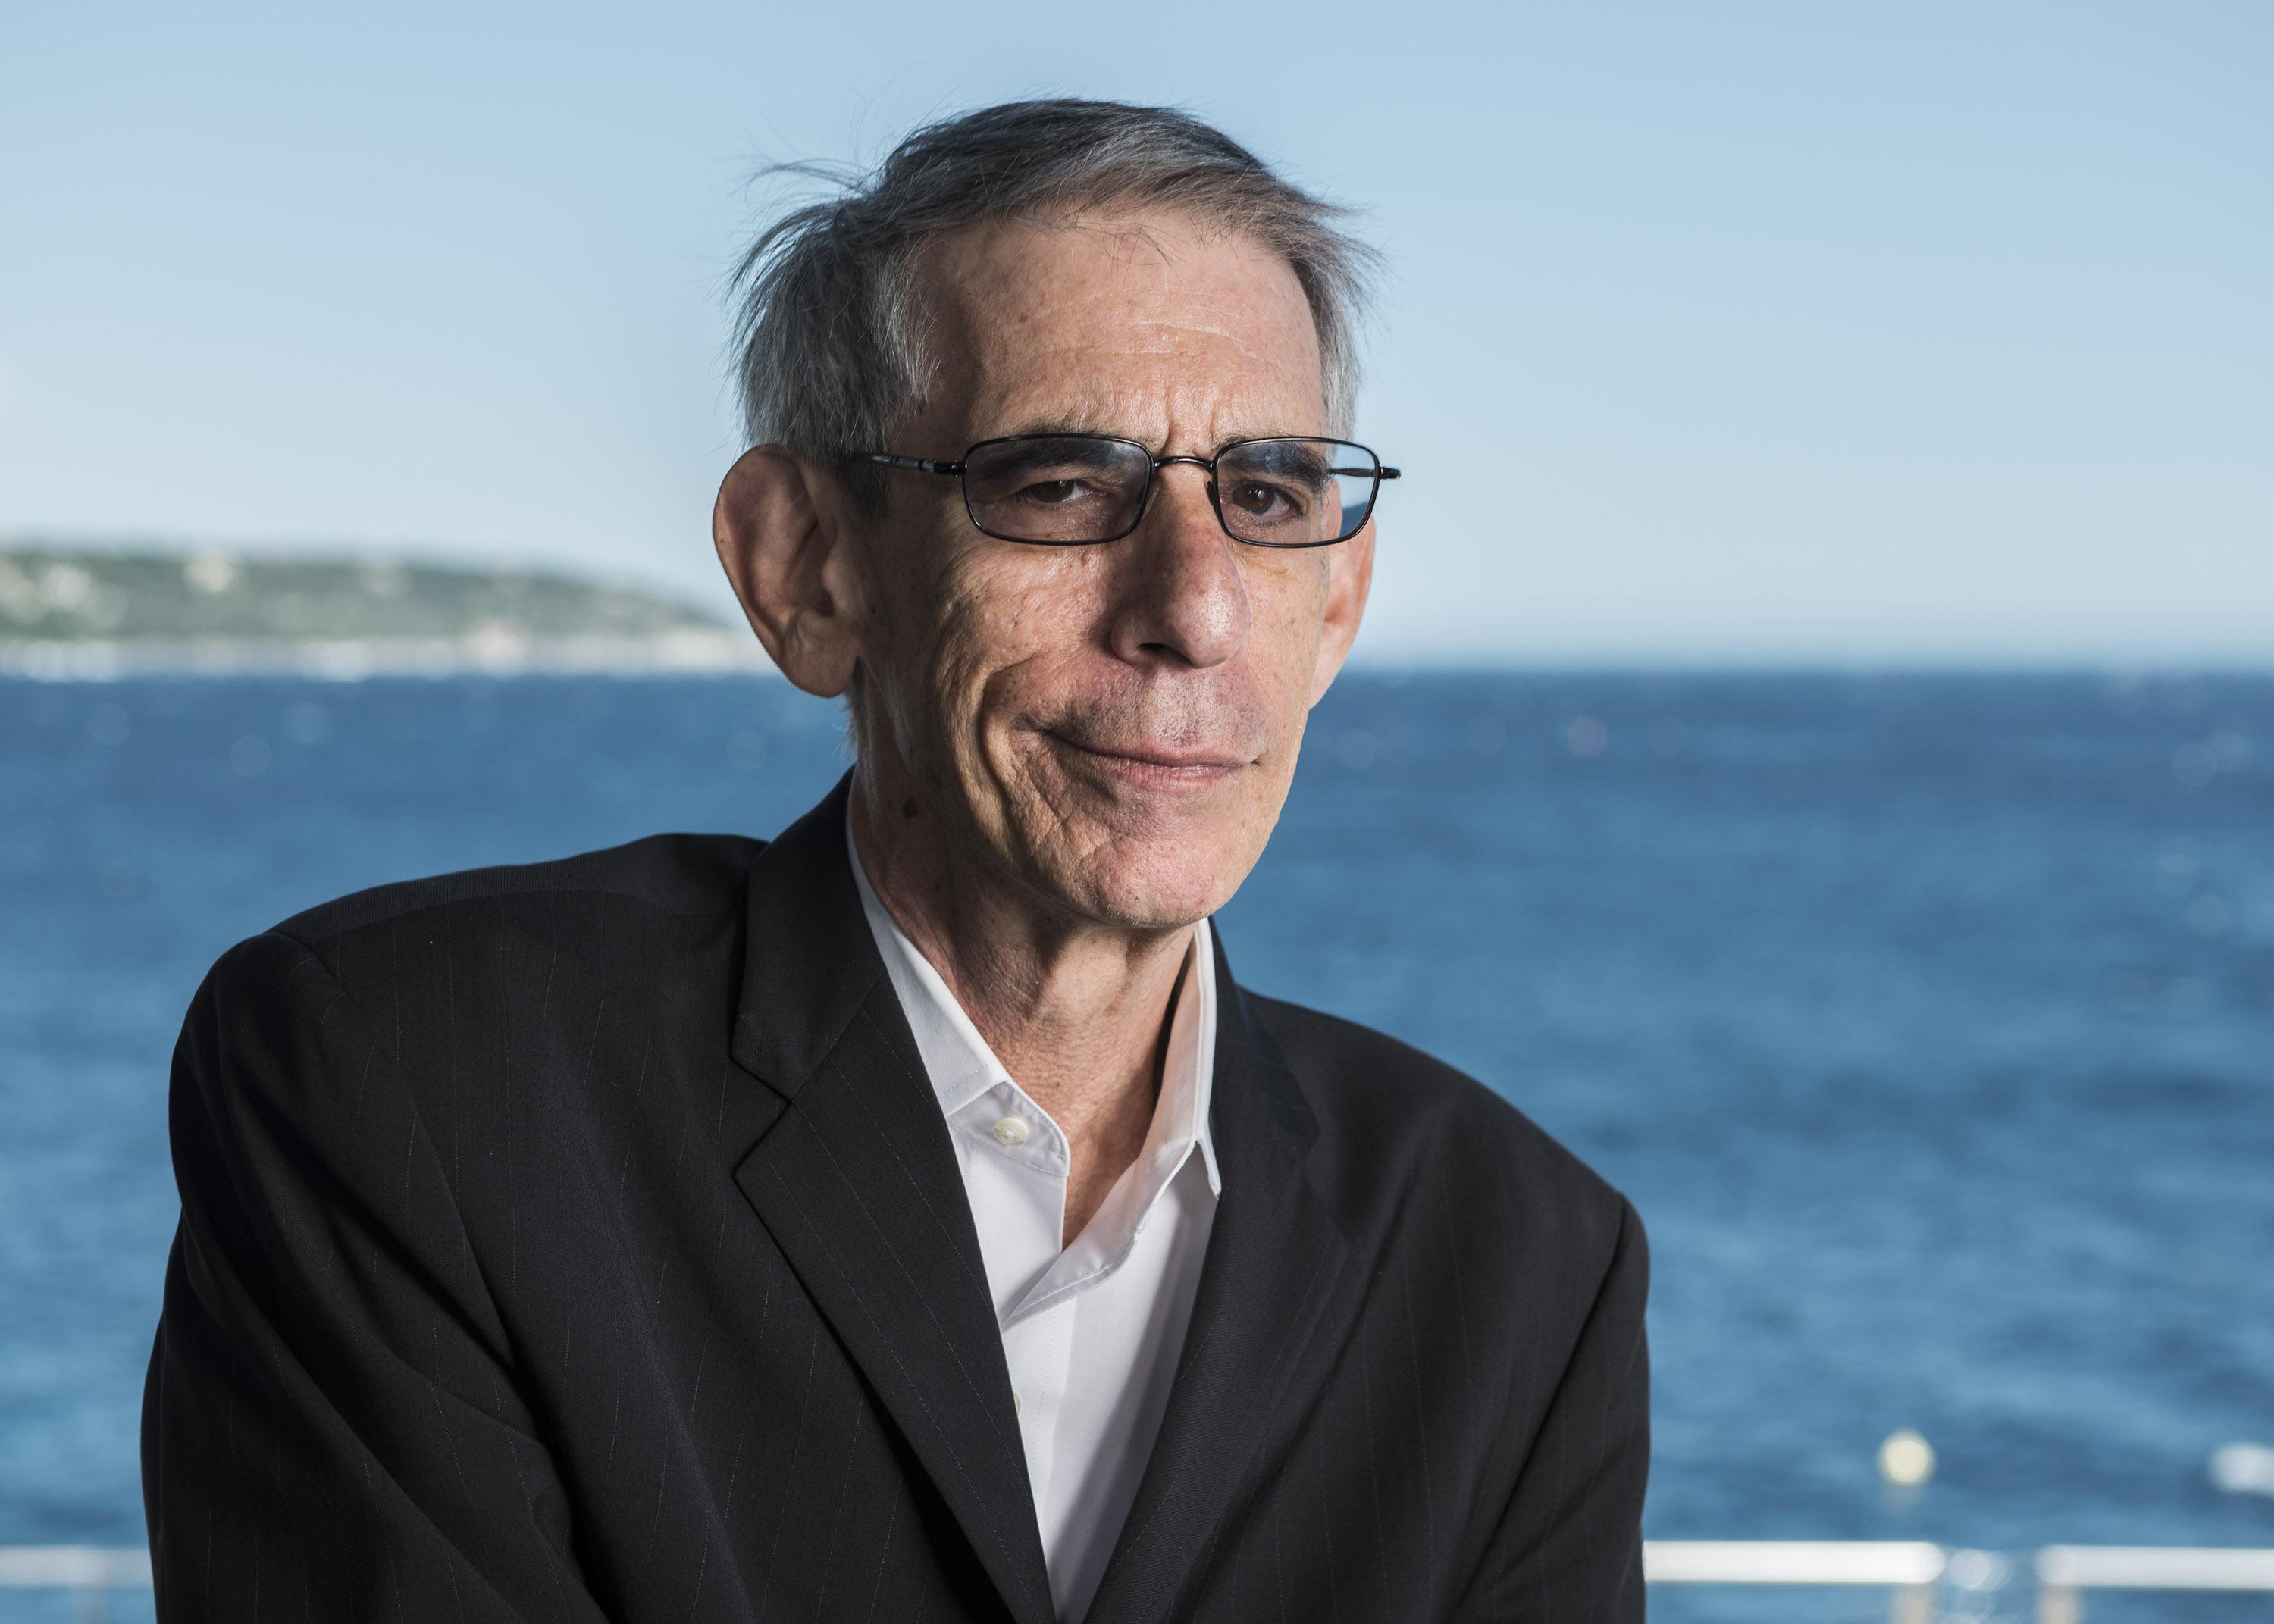 MONACO - JUNE 12:  Richard Belzer poses for a portrait session during the 52nd Monte Carlo TV Festival on June 12, 2012 in Monaco, Monaco.  (Photo by Francois Durand/Getty Images)